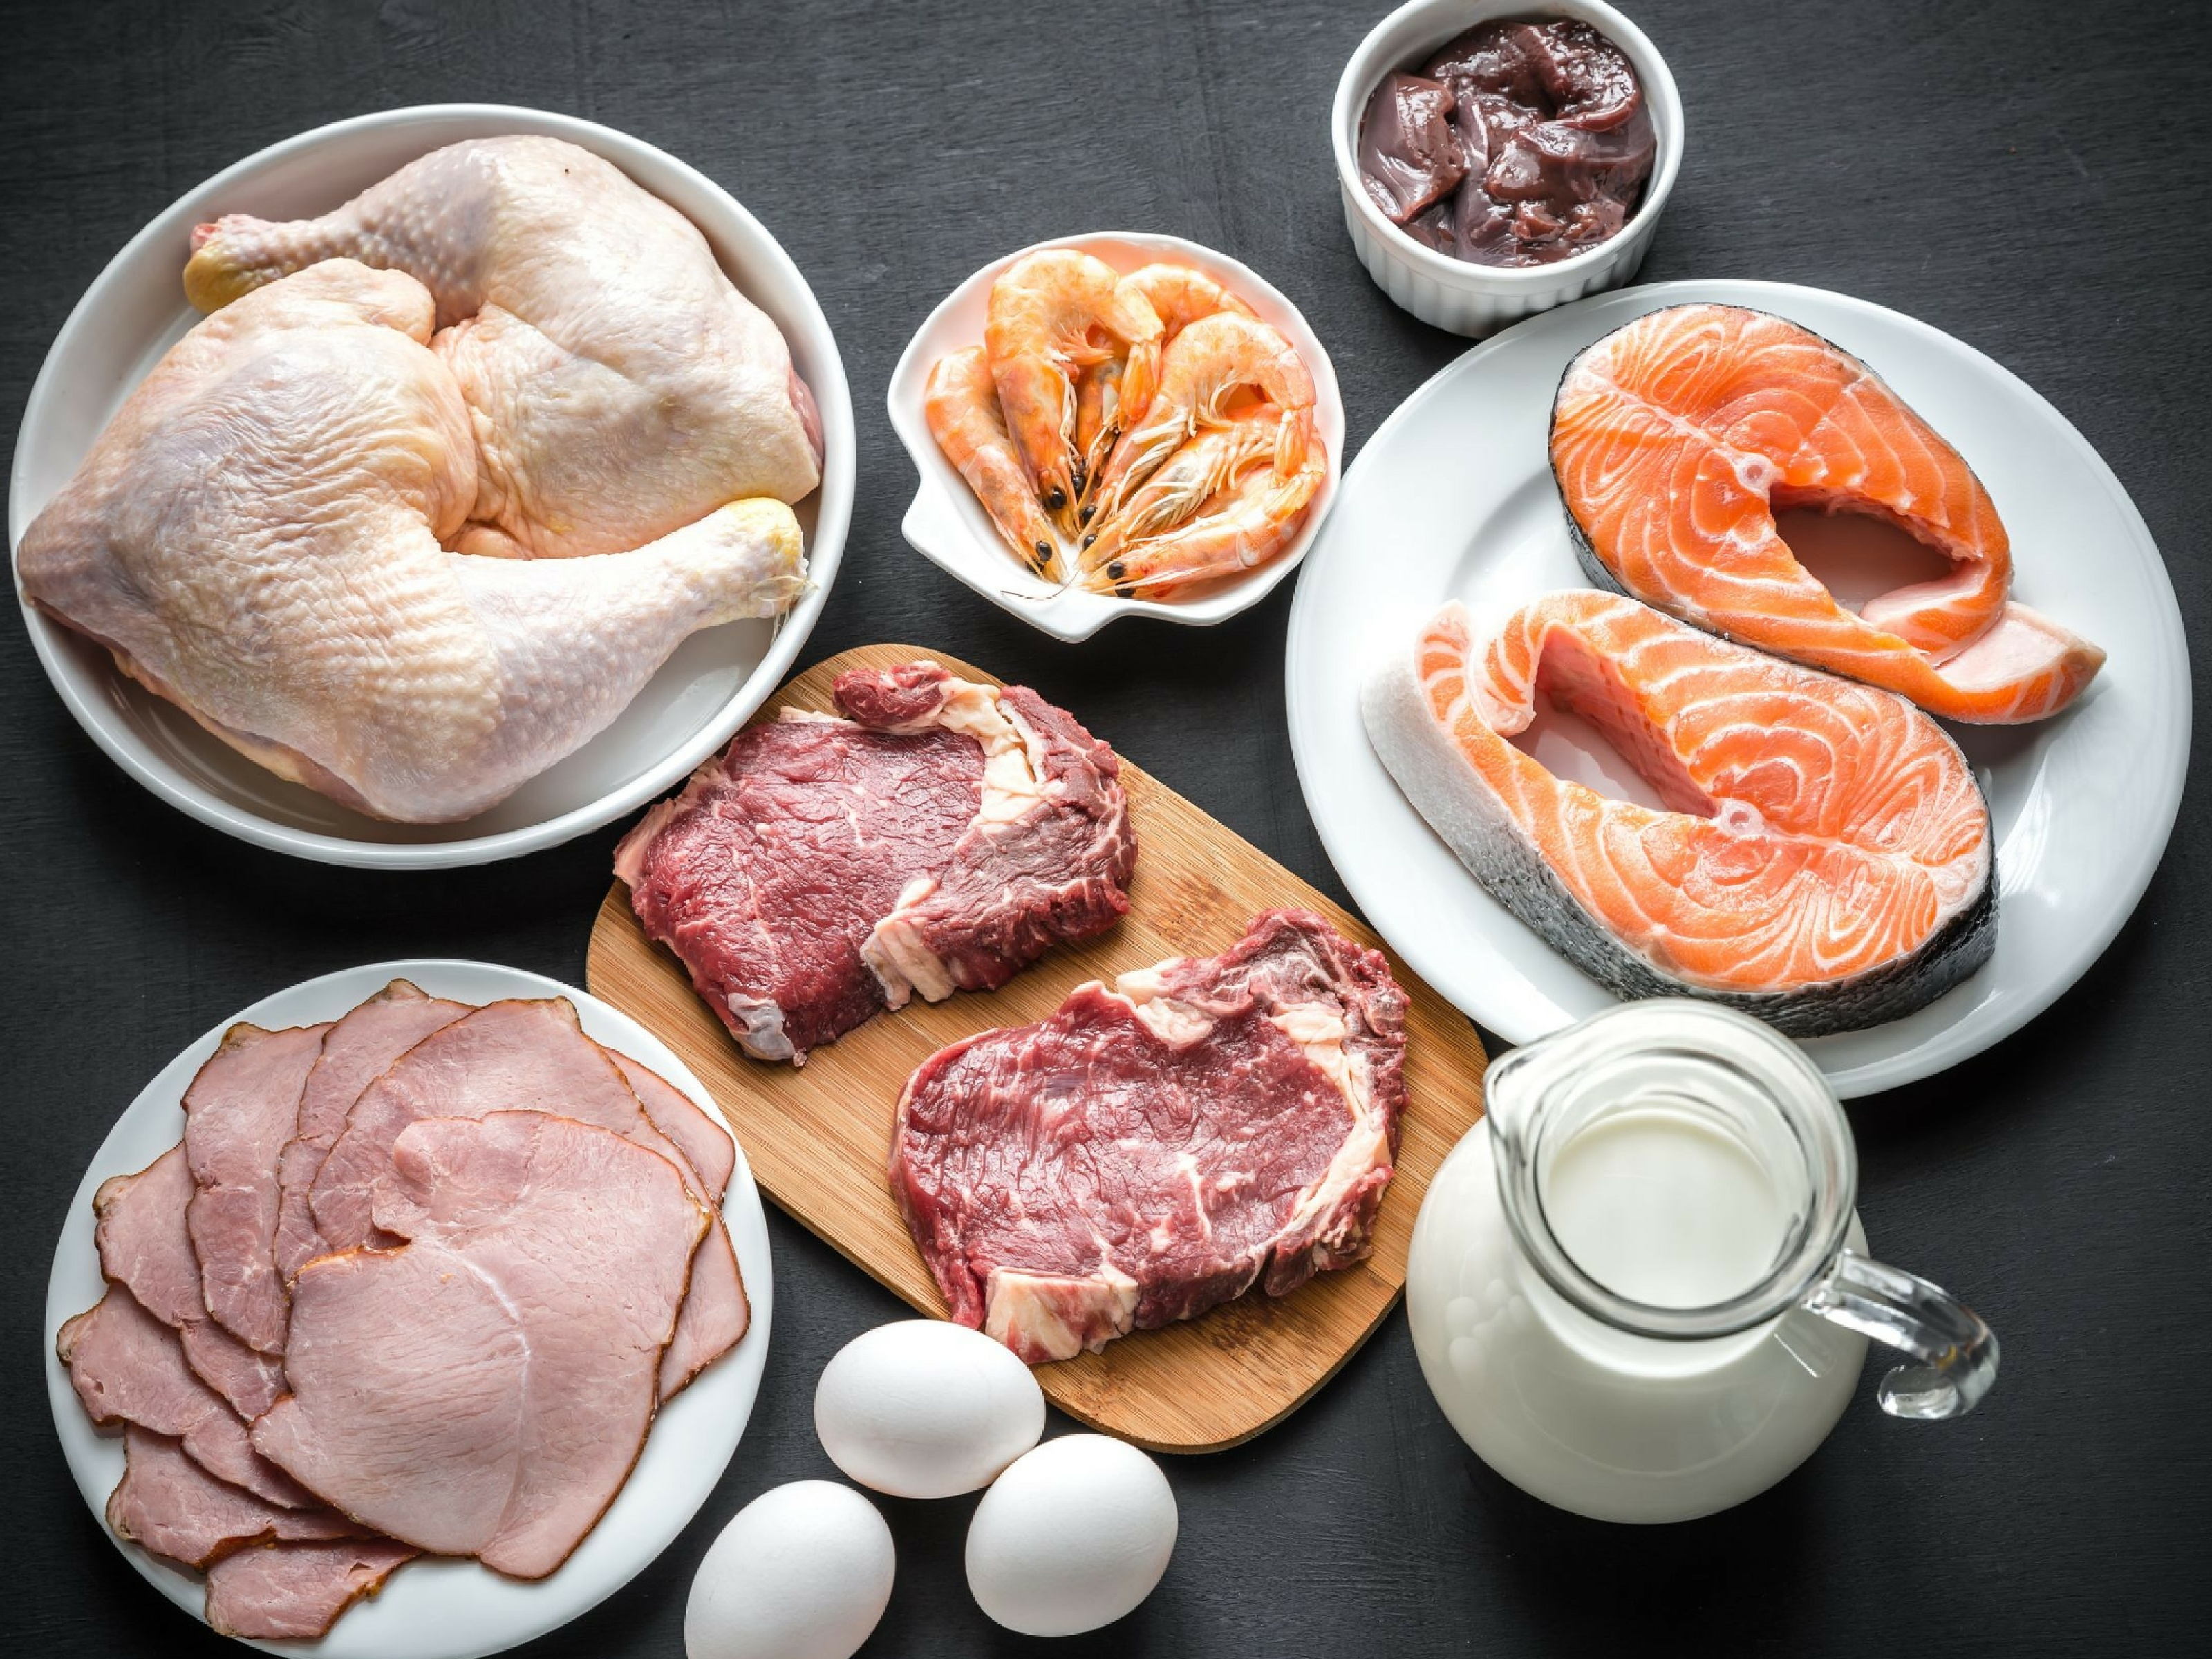 New Protein Choices Complicate Food Handling Practices